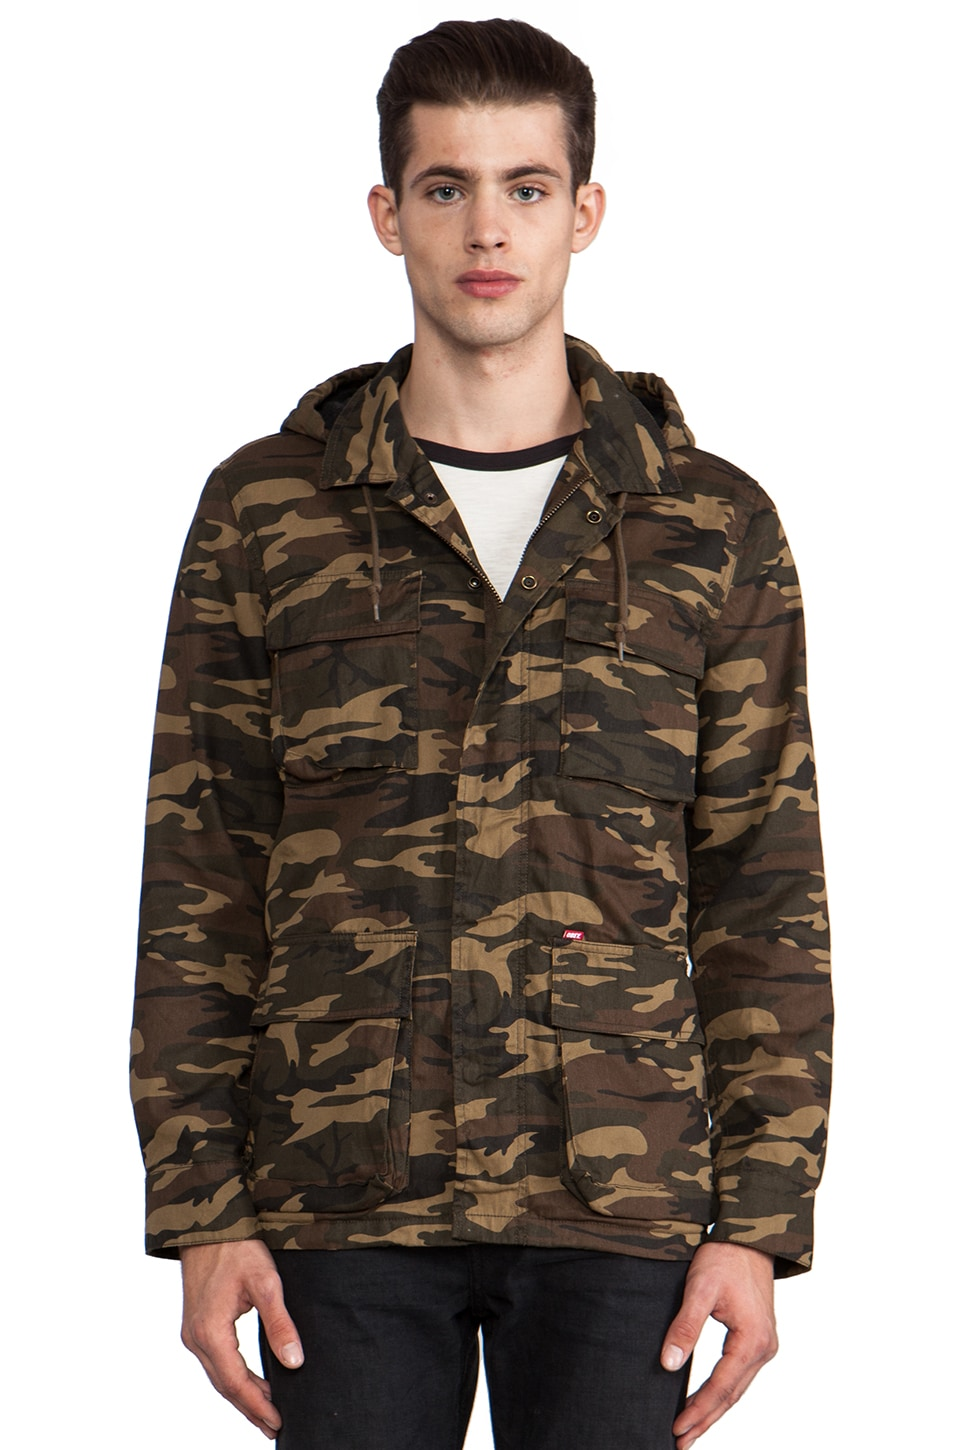 Obey Fields Jacket in Camo